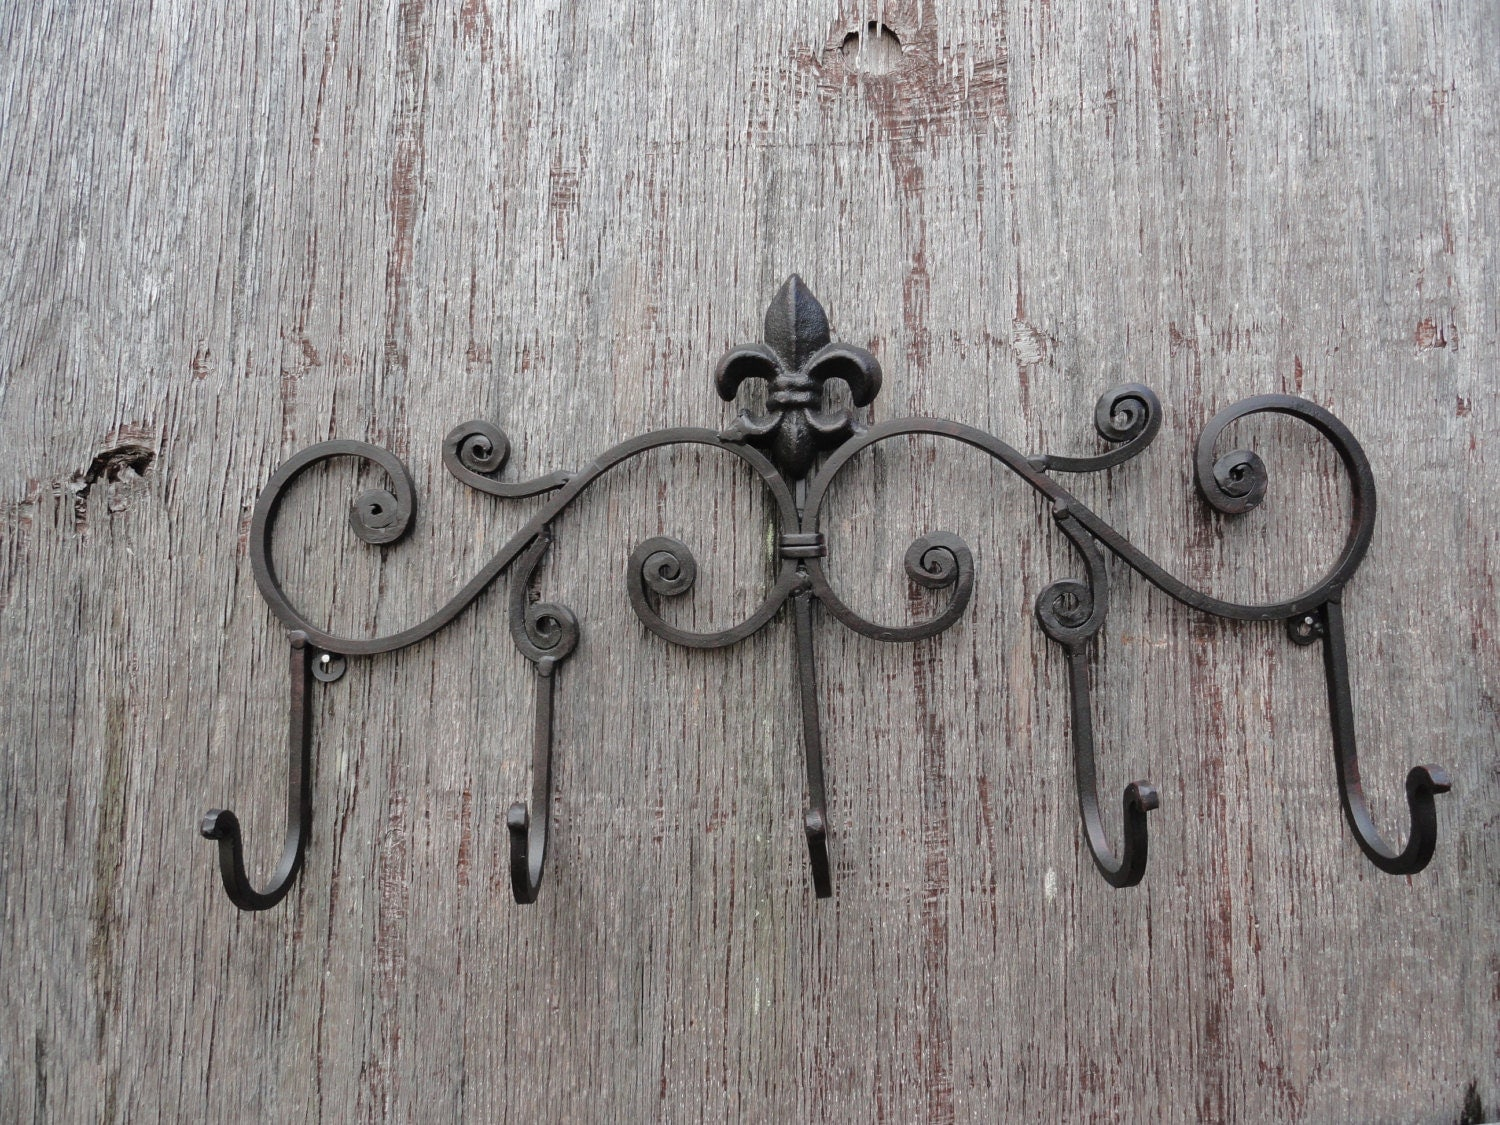 Fleur De Lis Metal Wall Decor Shabby And Chic Iron Coat Hanger